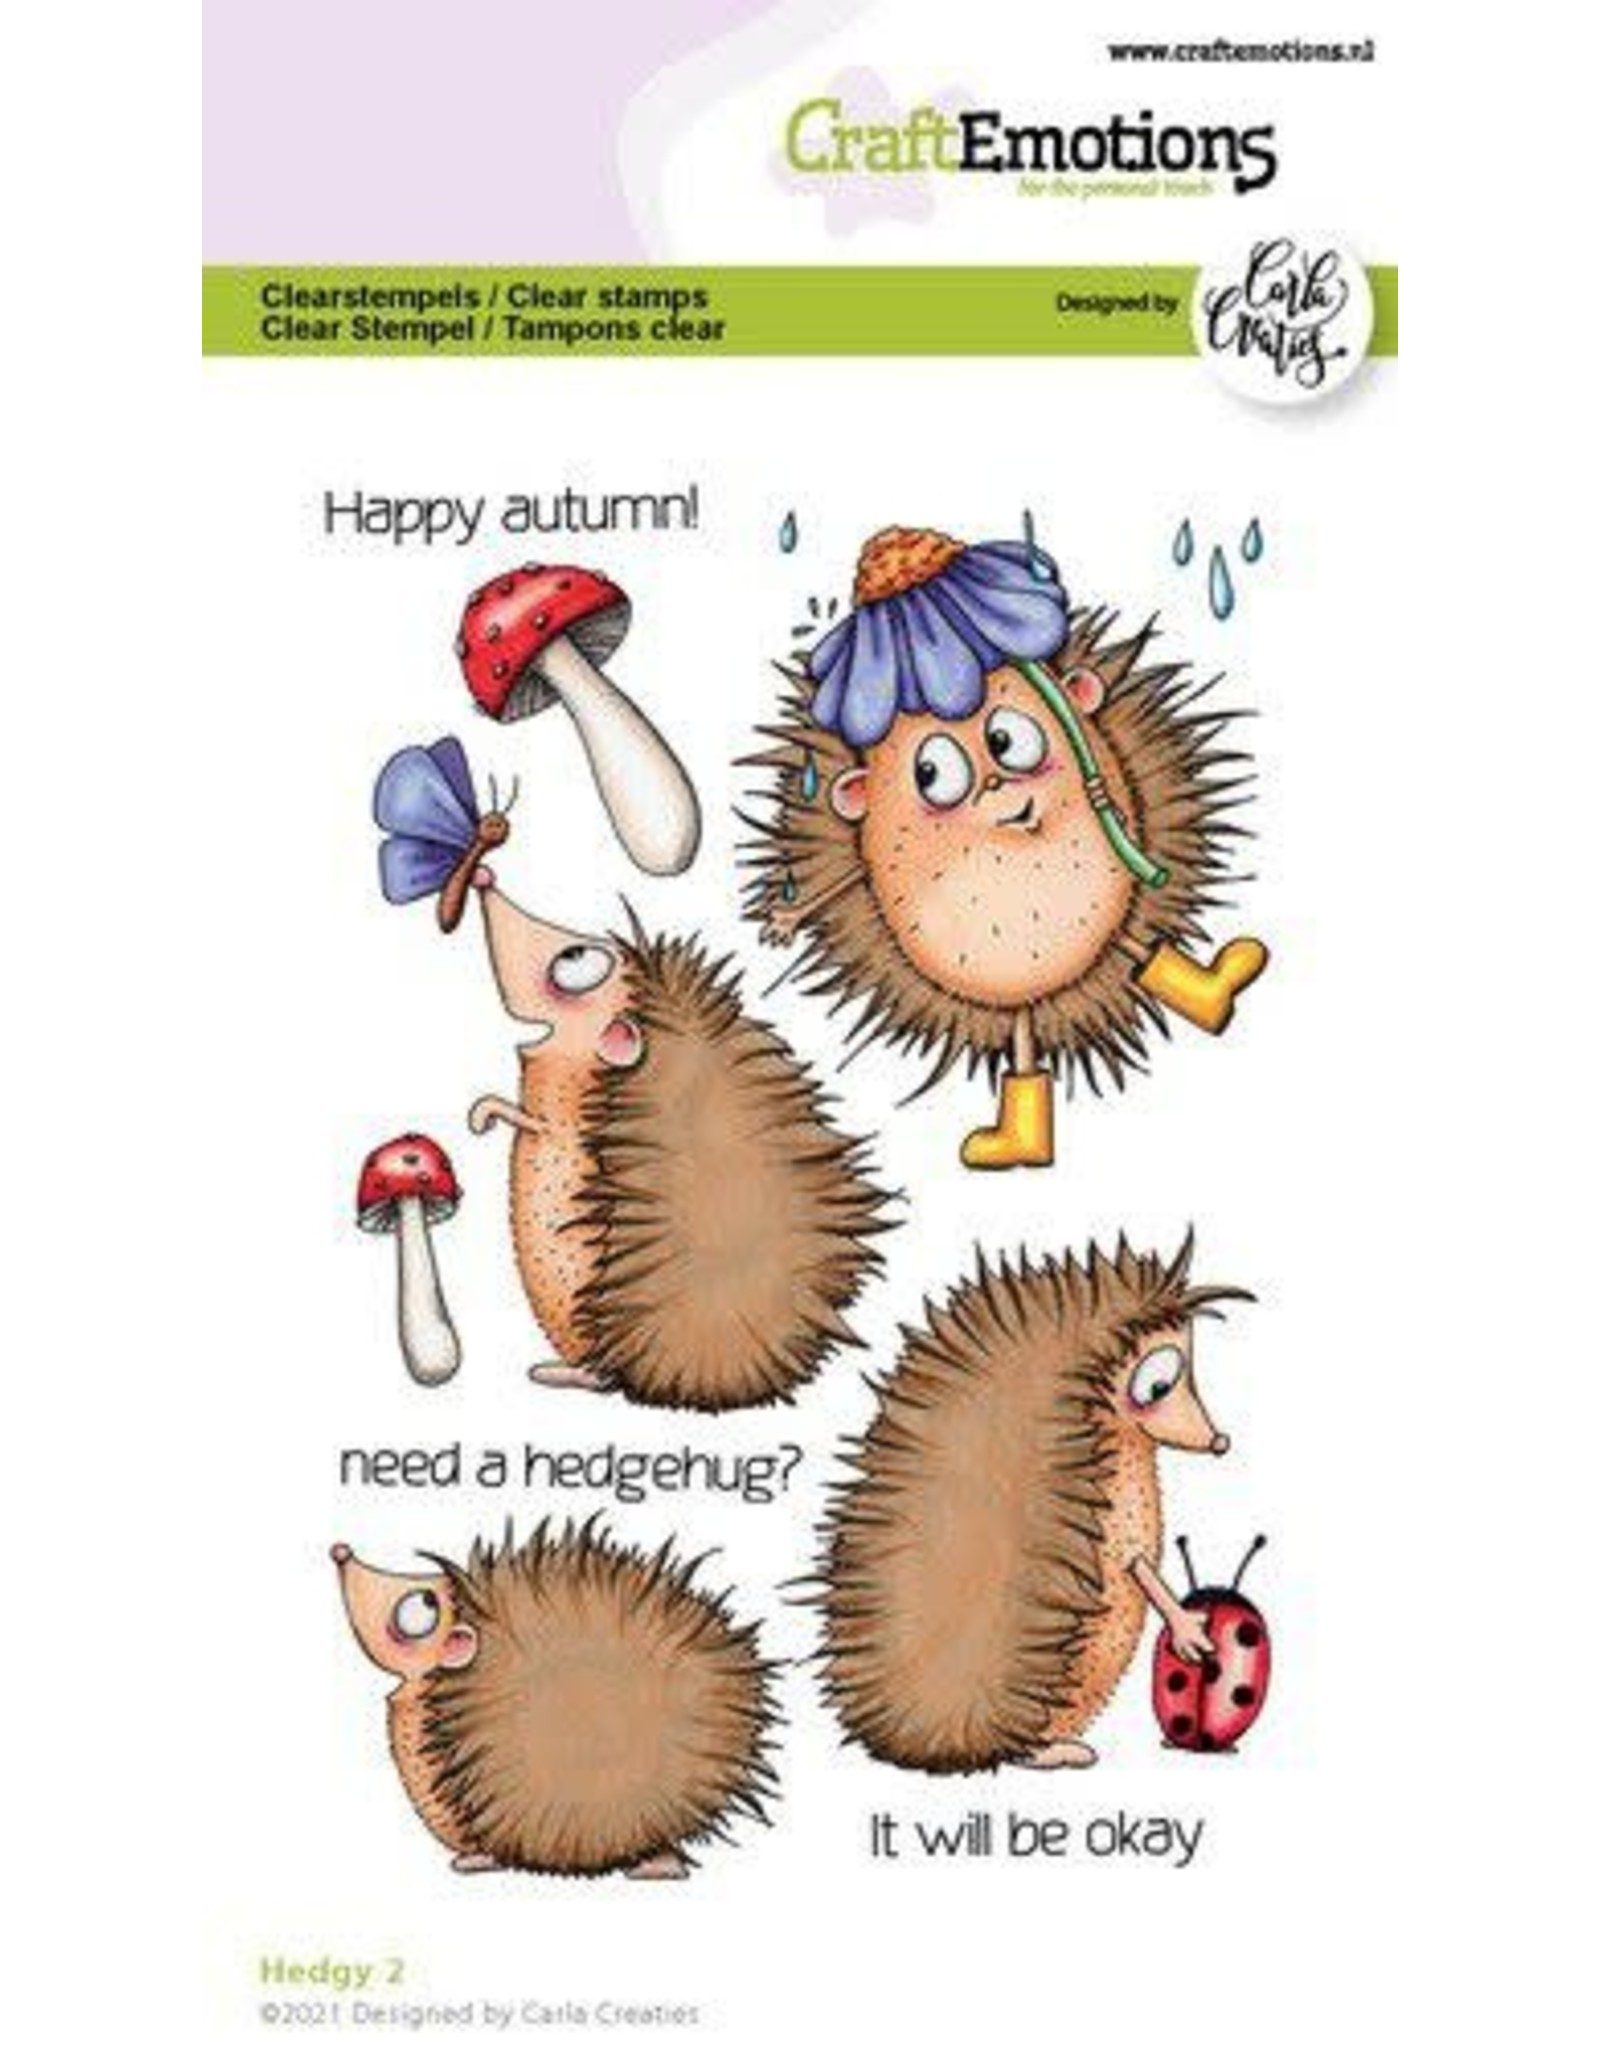 Craft Emotions CraftEmotions clearstamps A6 - Hedgy 2 (Eng) Carla Creaties